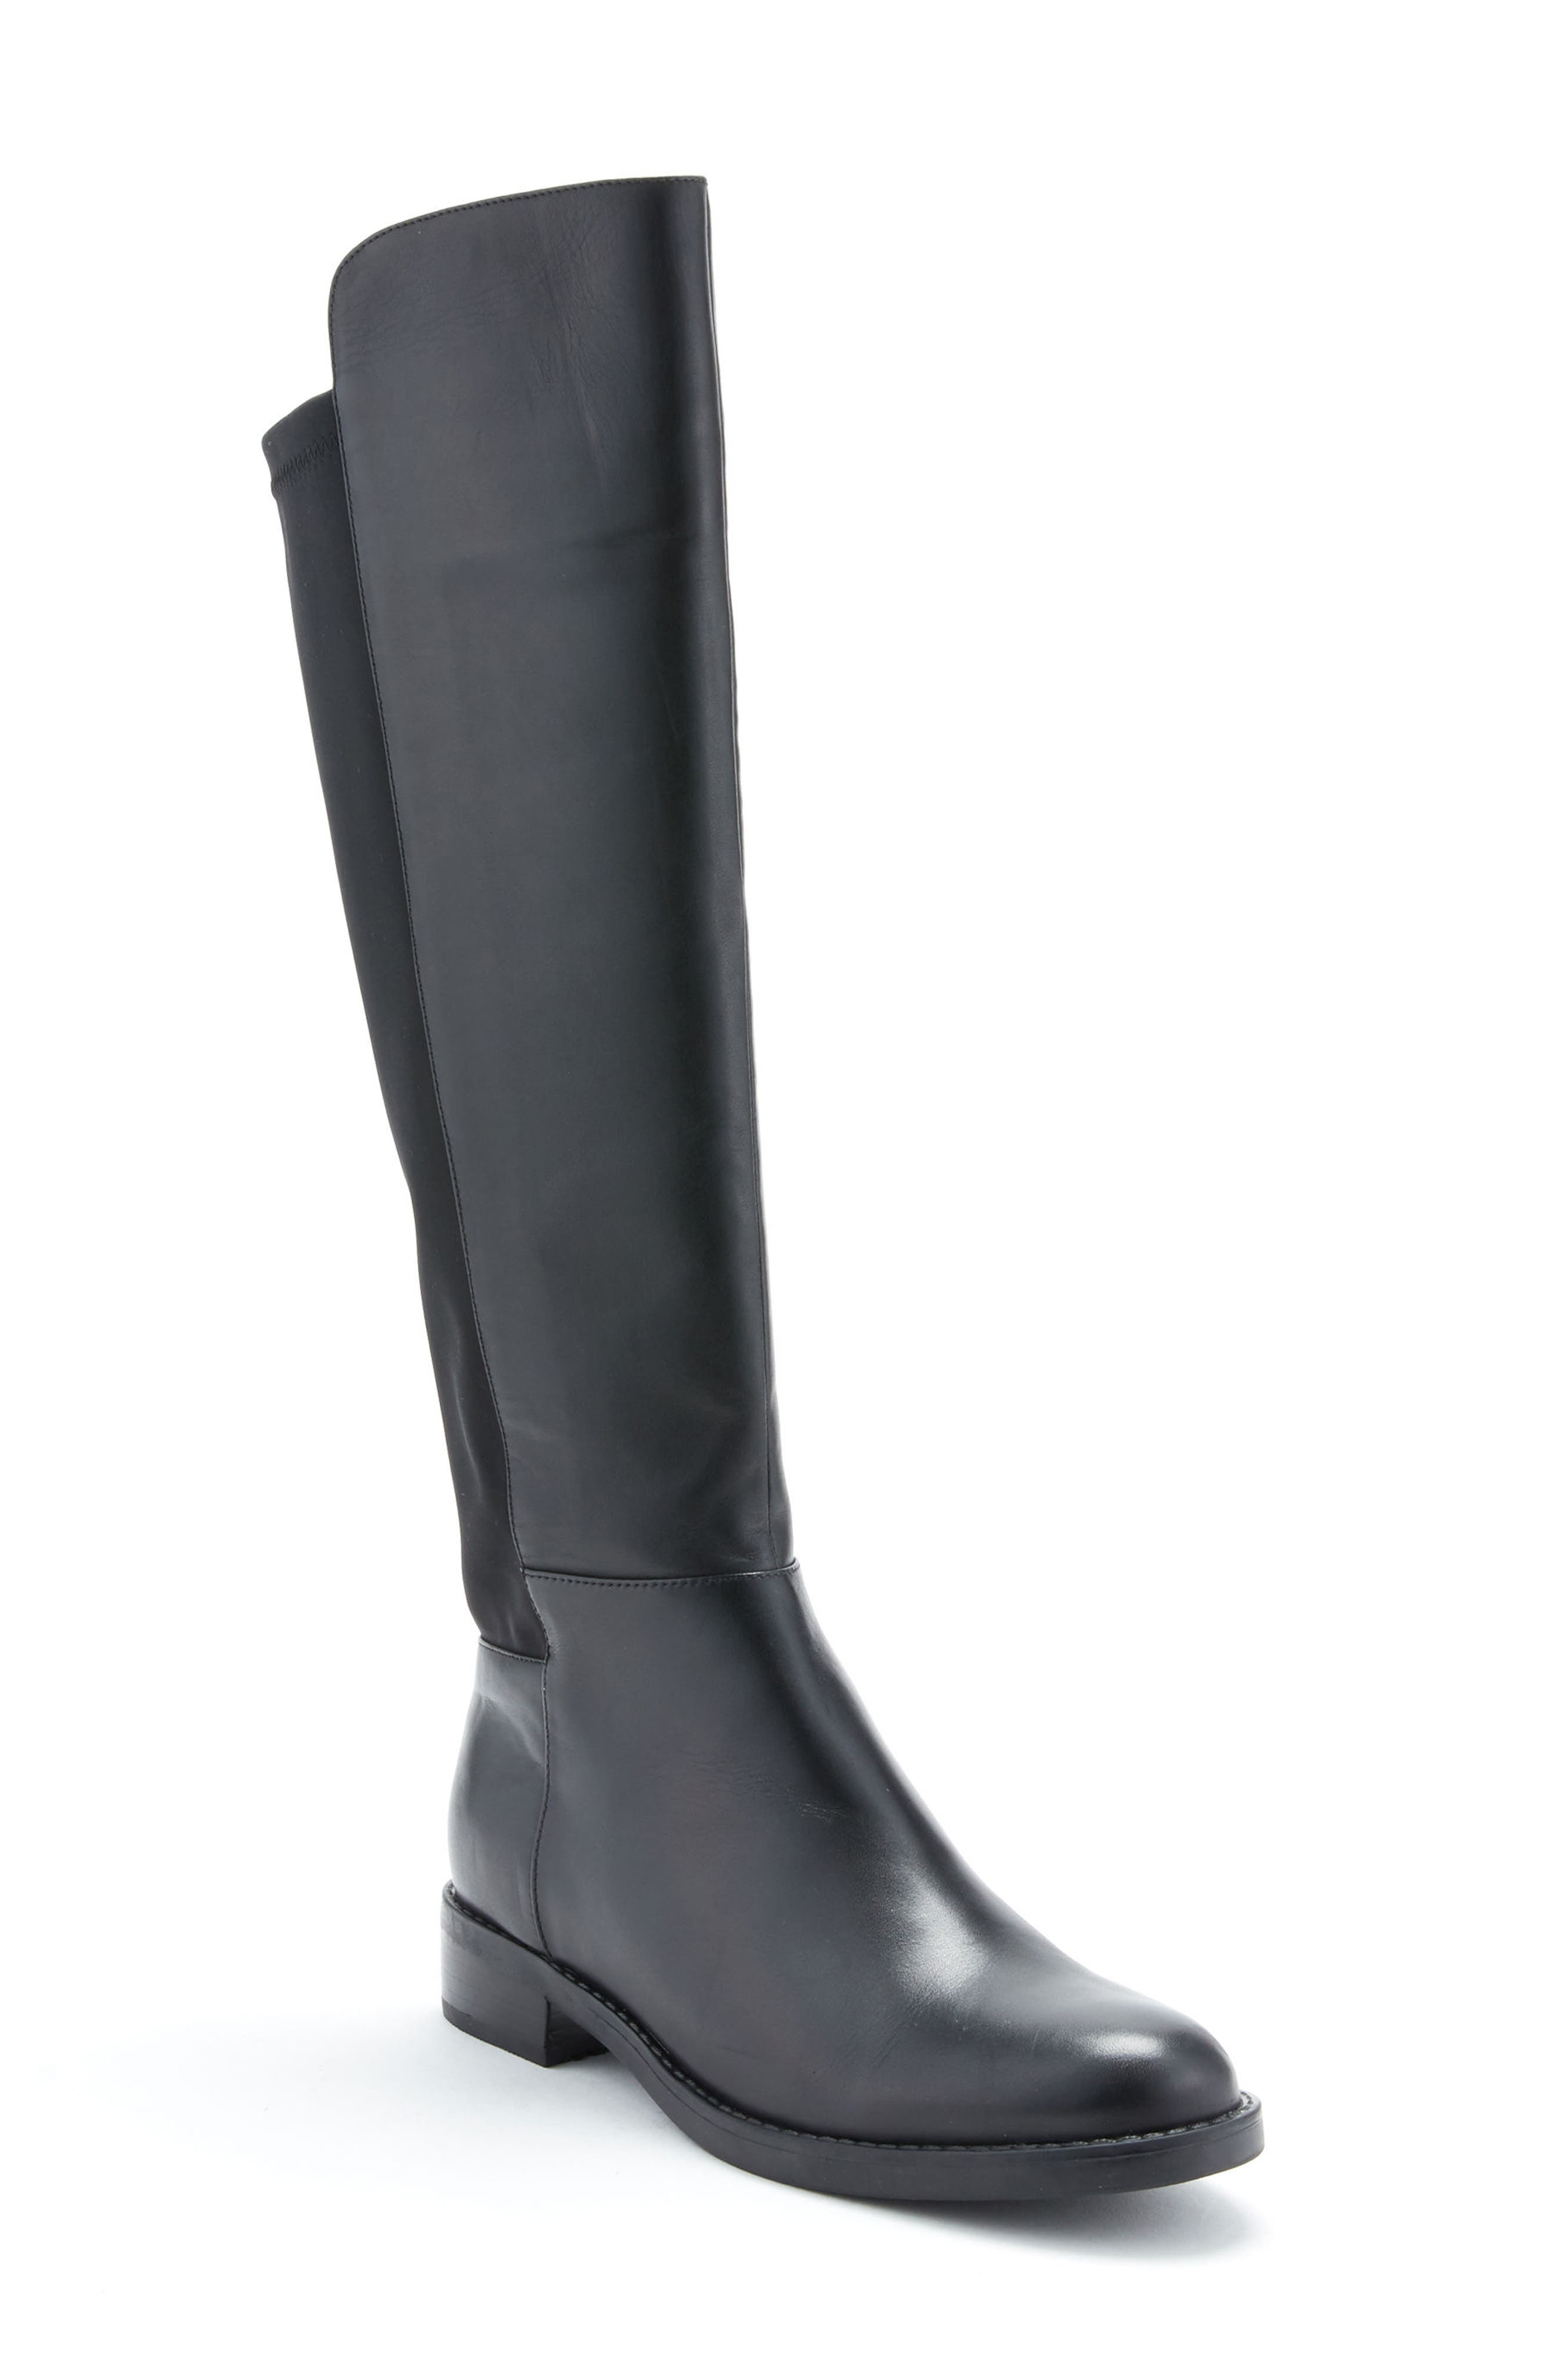 Ellie Waterproof Knee High Riding Boot,                             Main thumbnail 1, color,                             BLACK LEATHER